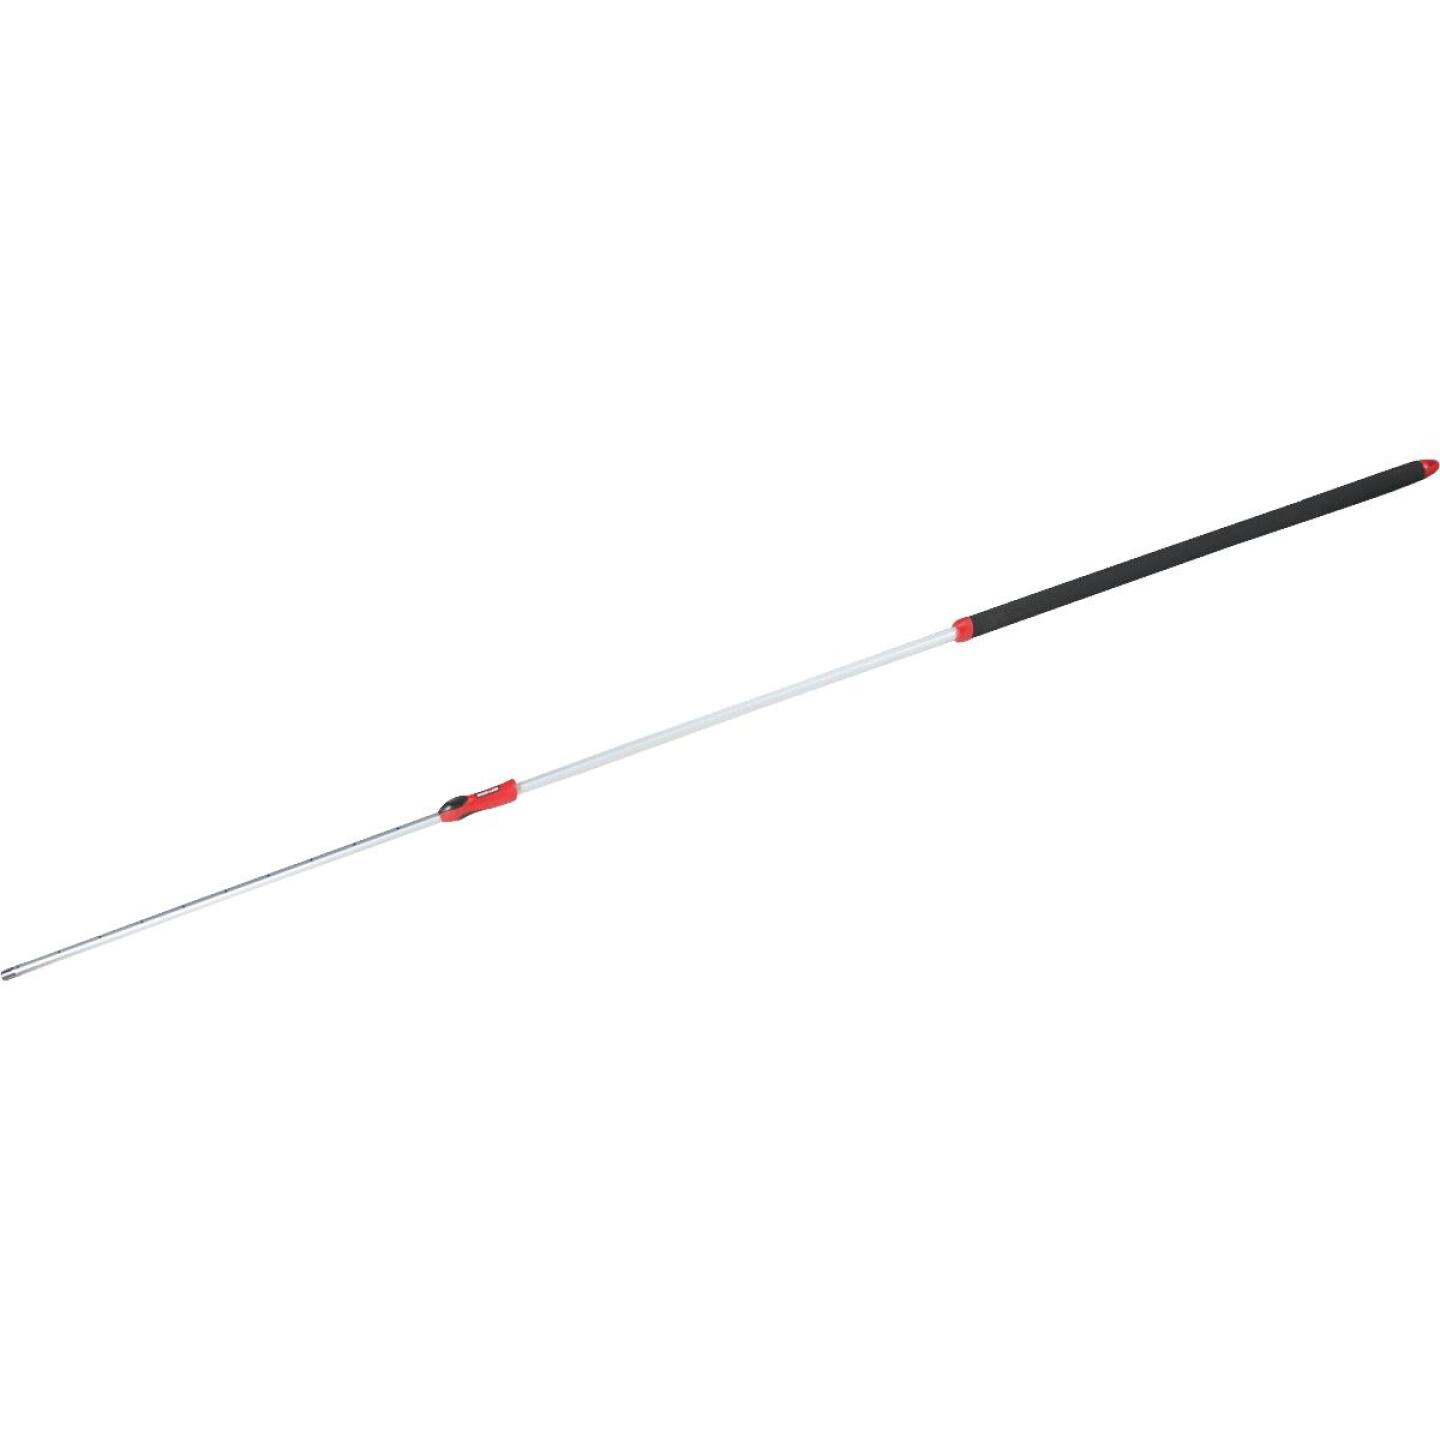 Shur-Line 48 In. to 108 In. Metal, Foam (Handle) Extension Pole Image 2